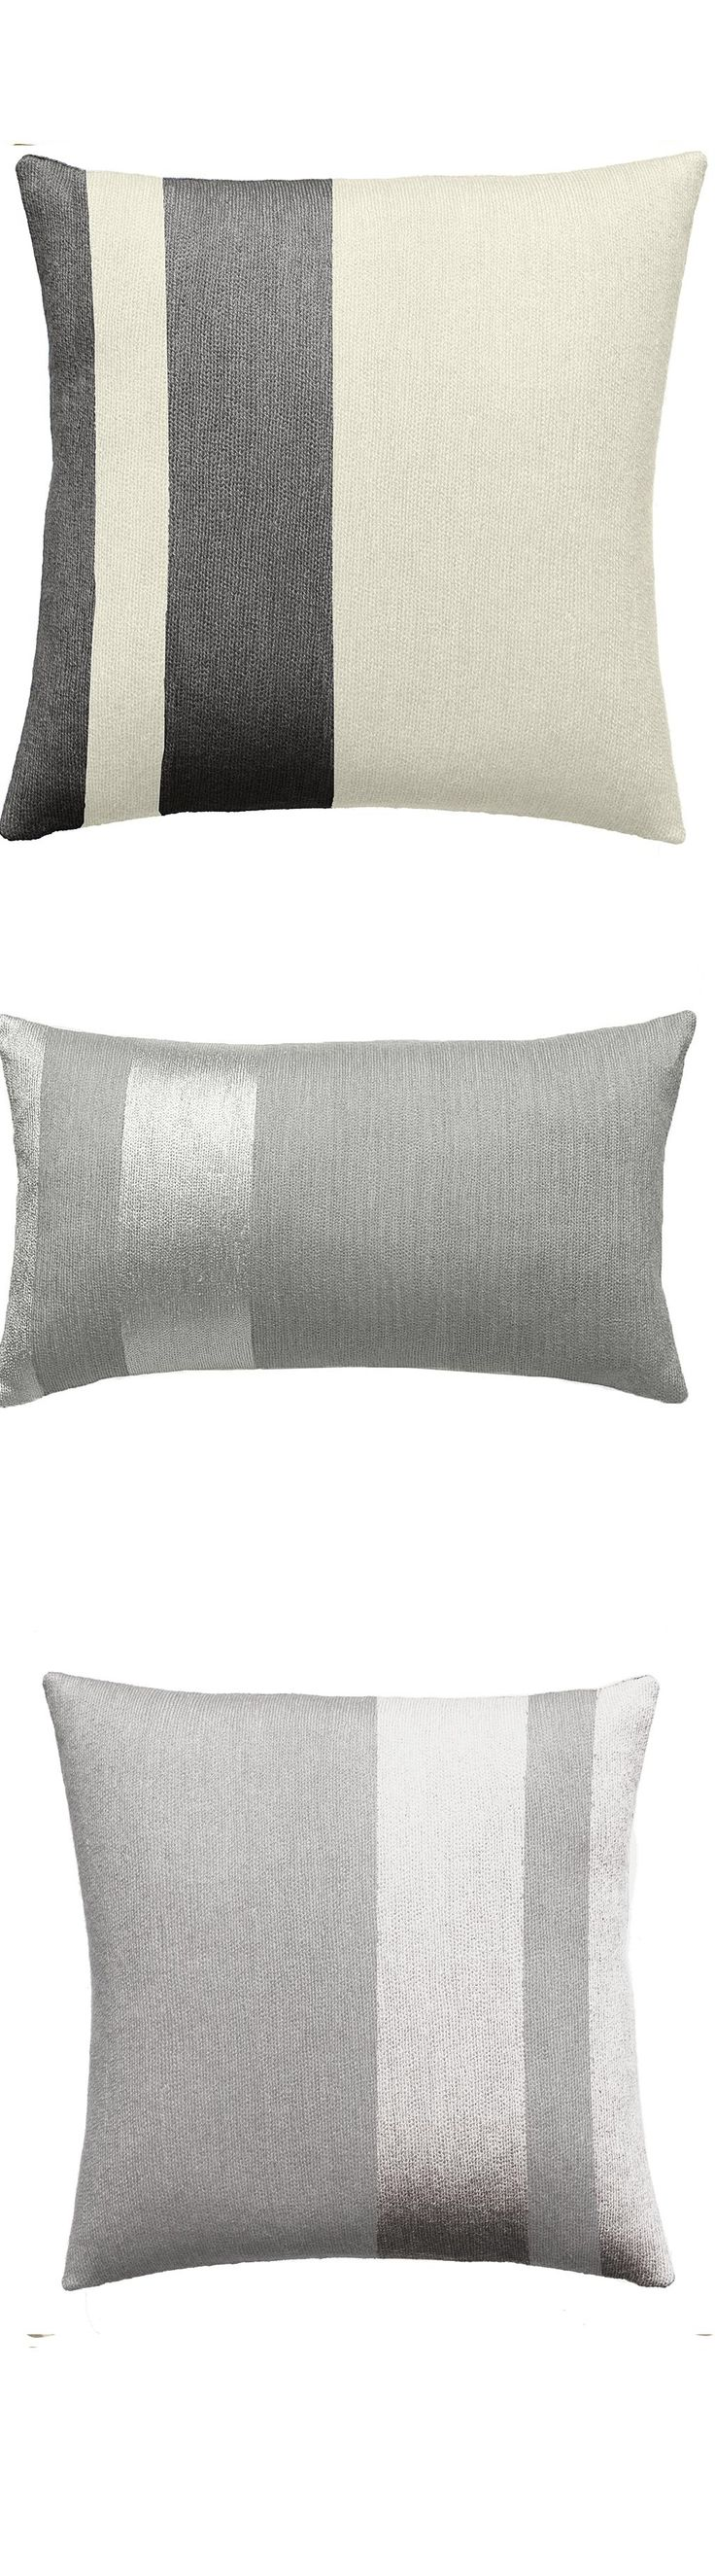 Throw Pillows On Grey Couch : 17 Best images about Gray Pillows on Pinterest Sofa pillows, Gray and Throw pillows